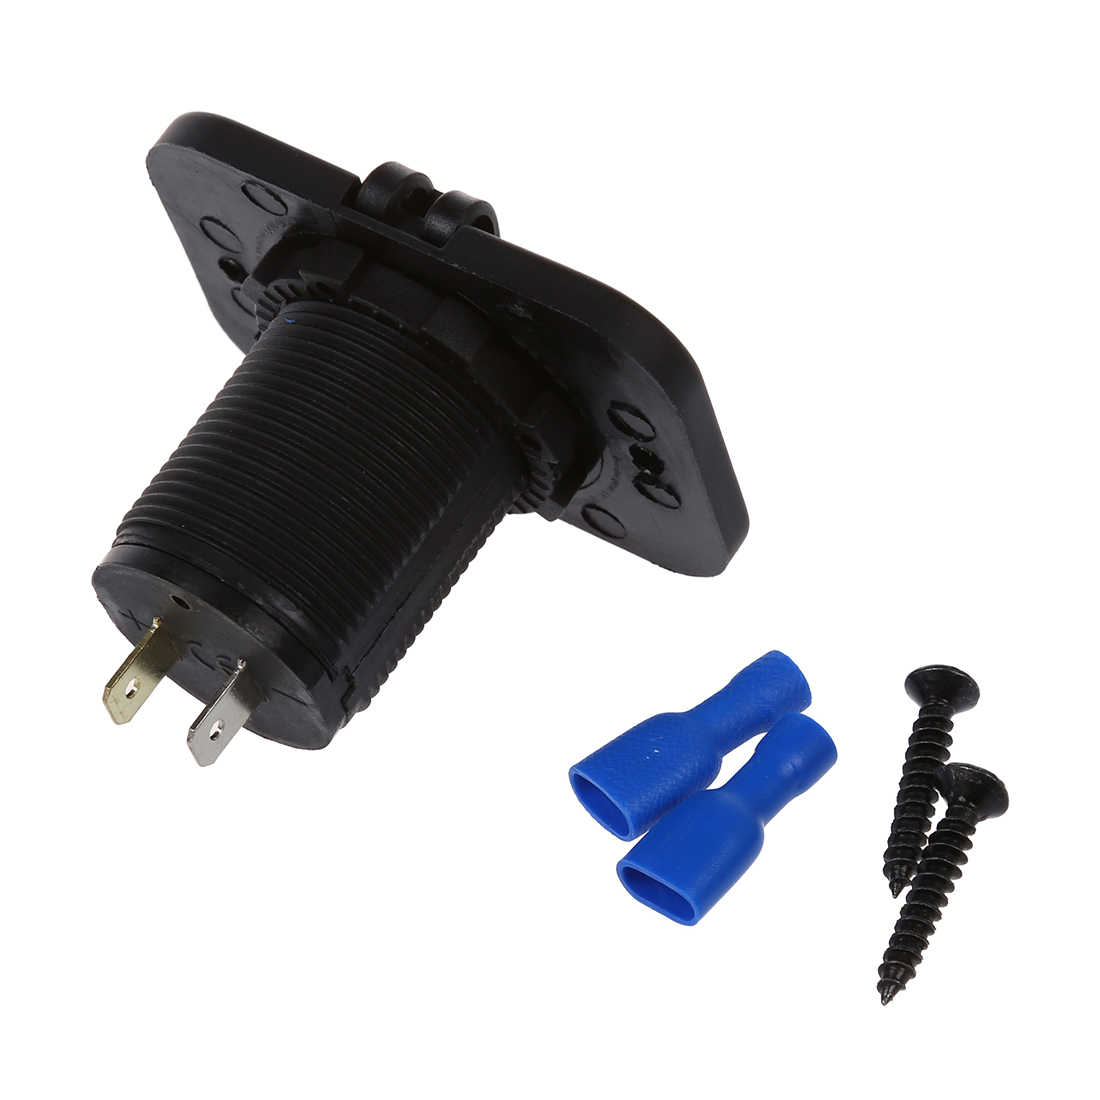 Adapter socket 2 USB Ports Car Charger for 12V Car Auto Dropshipping